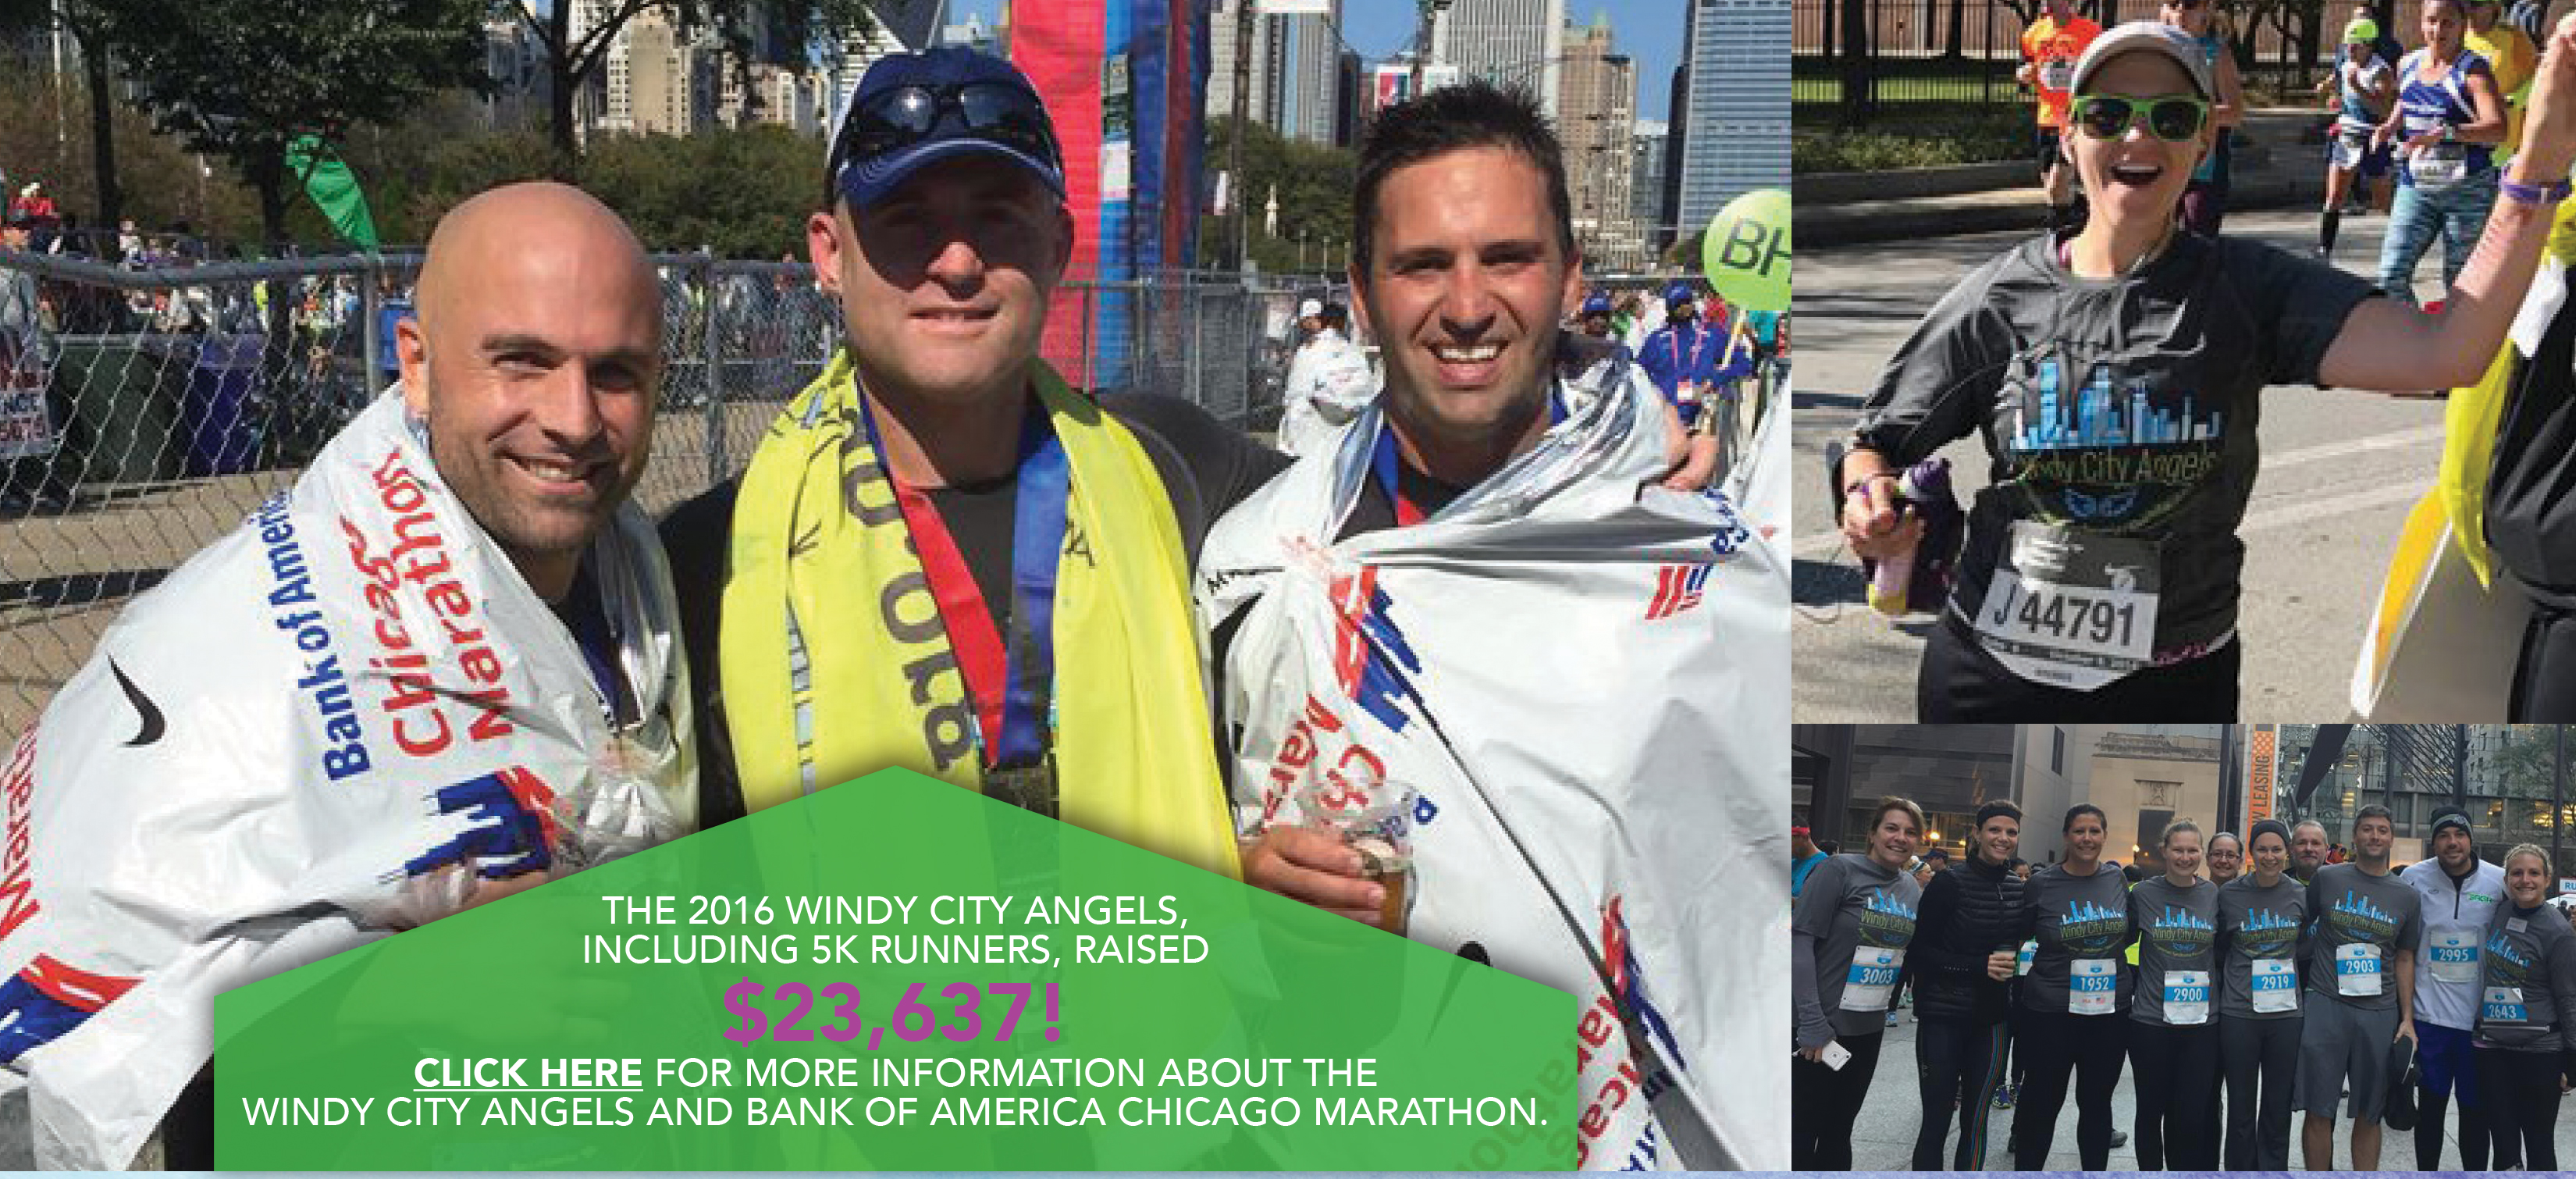 Windy City Angels run the Bank of America Chicago Marathon